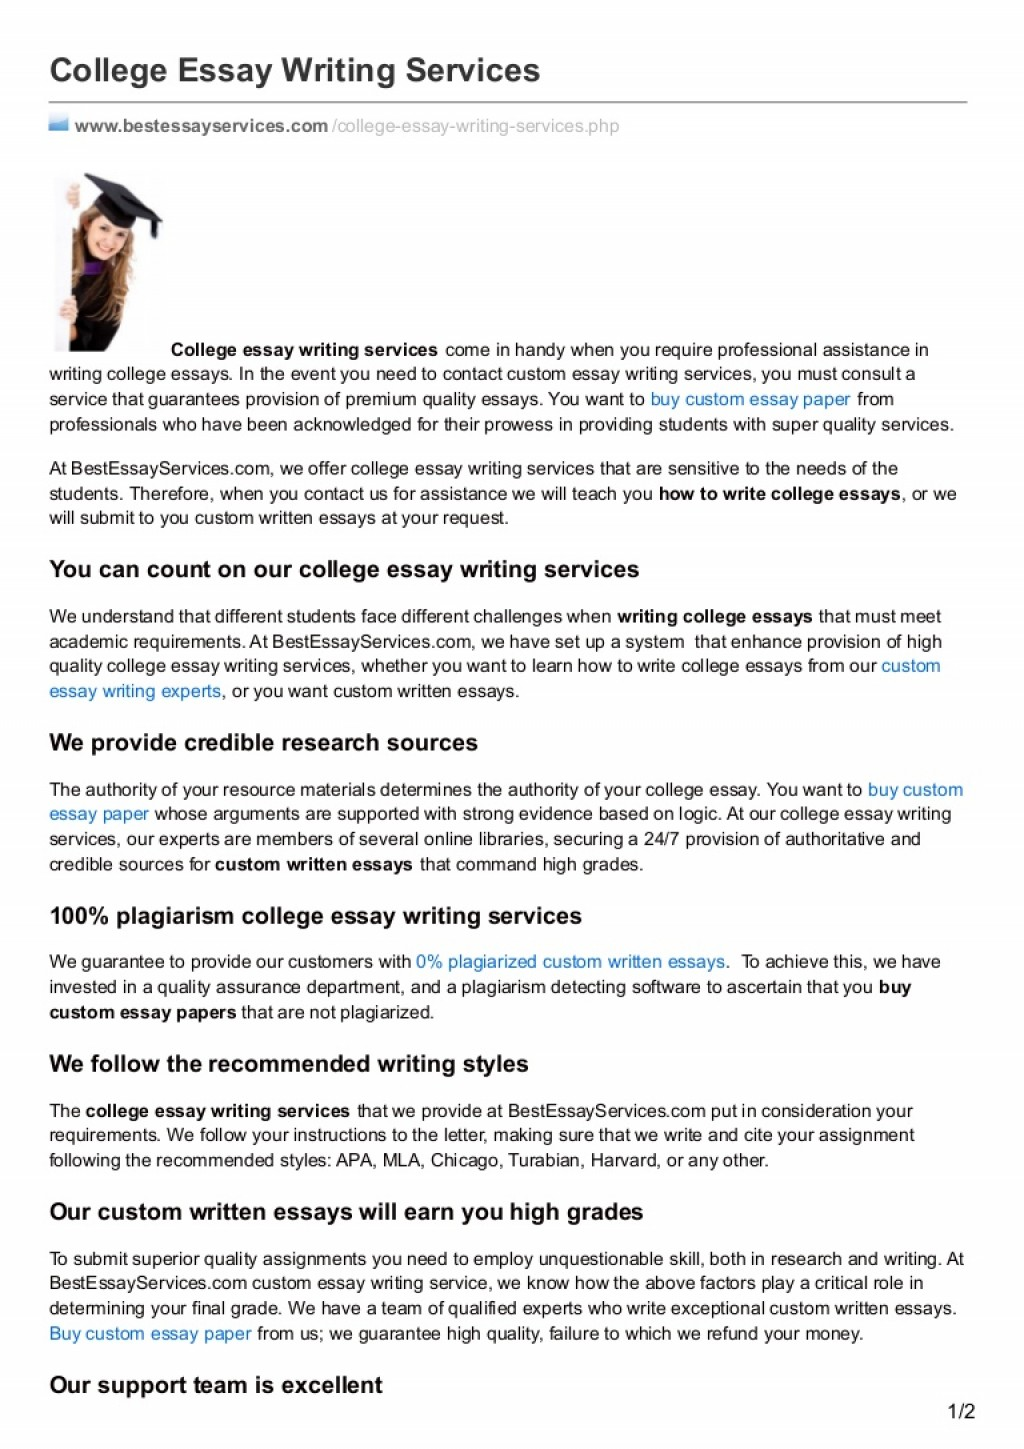 016 College Essay Service Example Bestessayservices Thumbnail Awful Writing Reviews Services Cheap Large